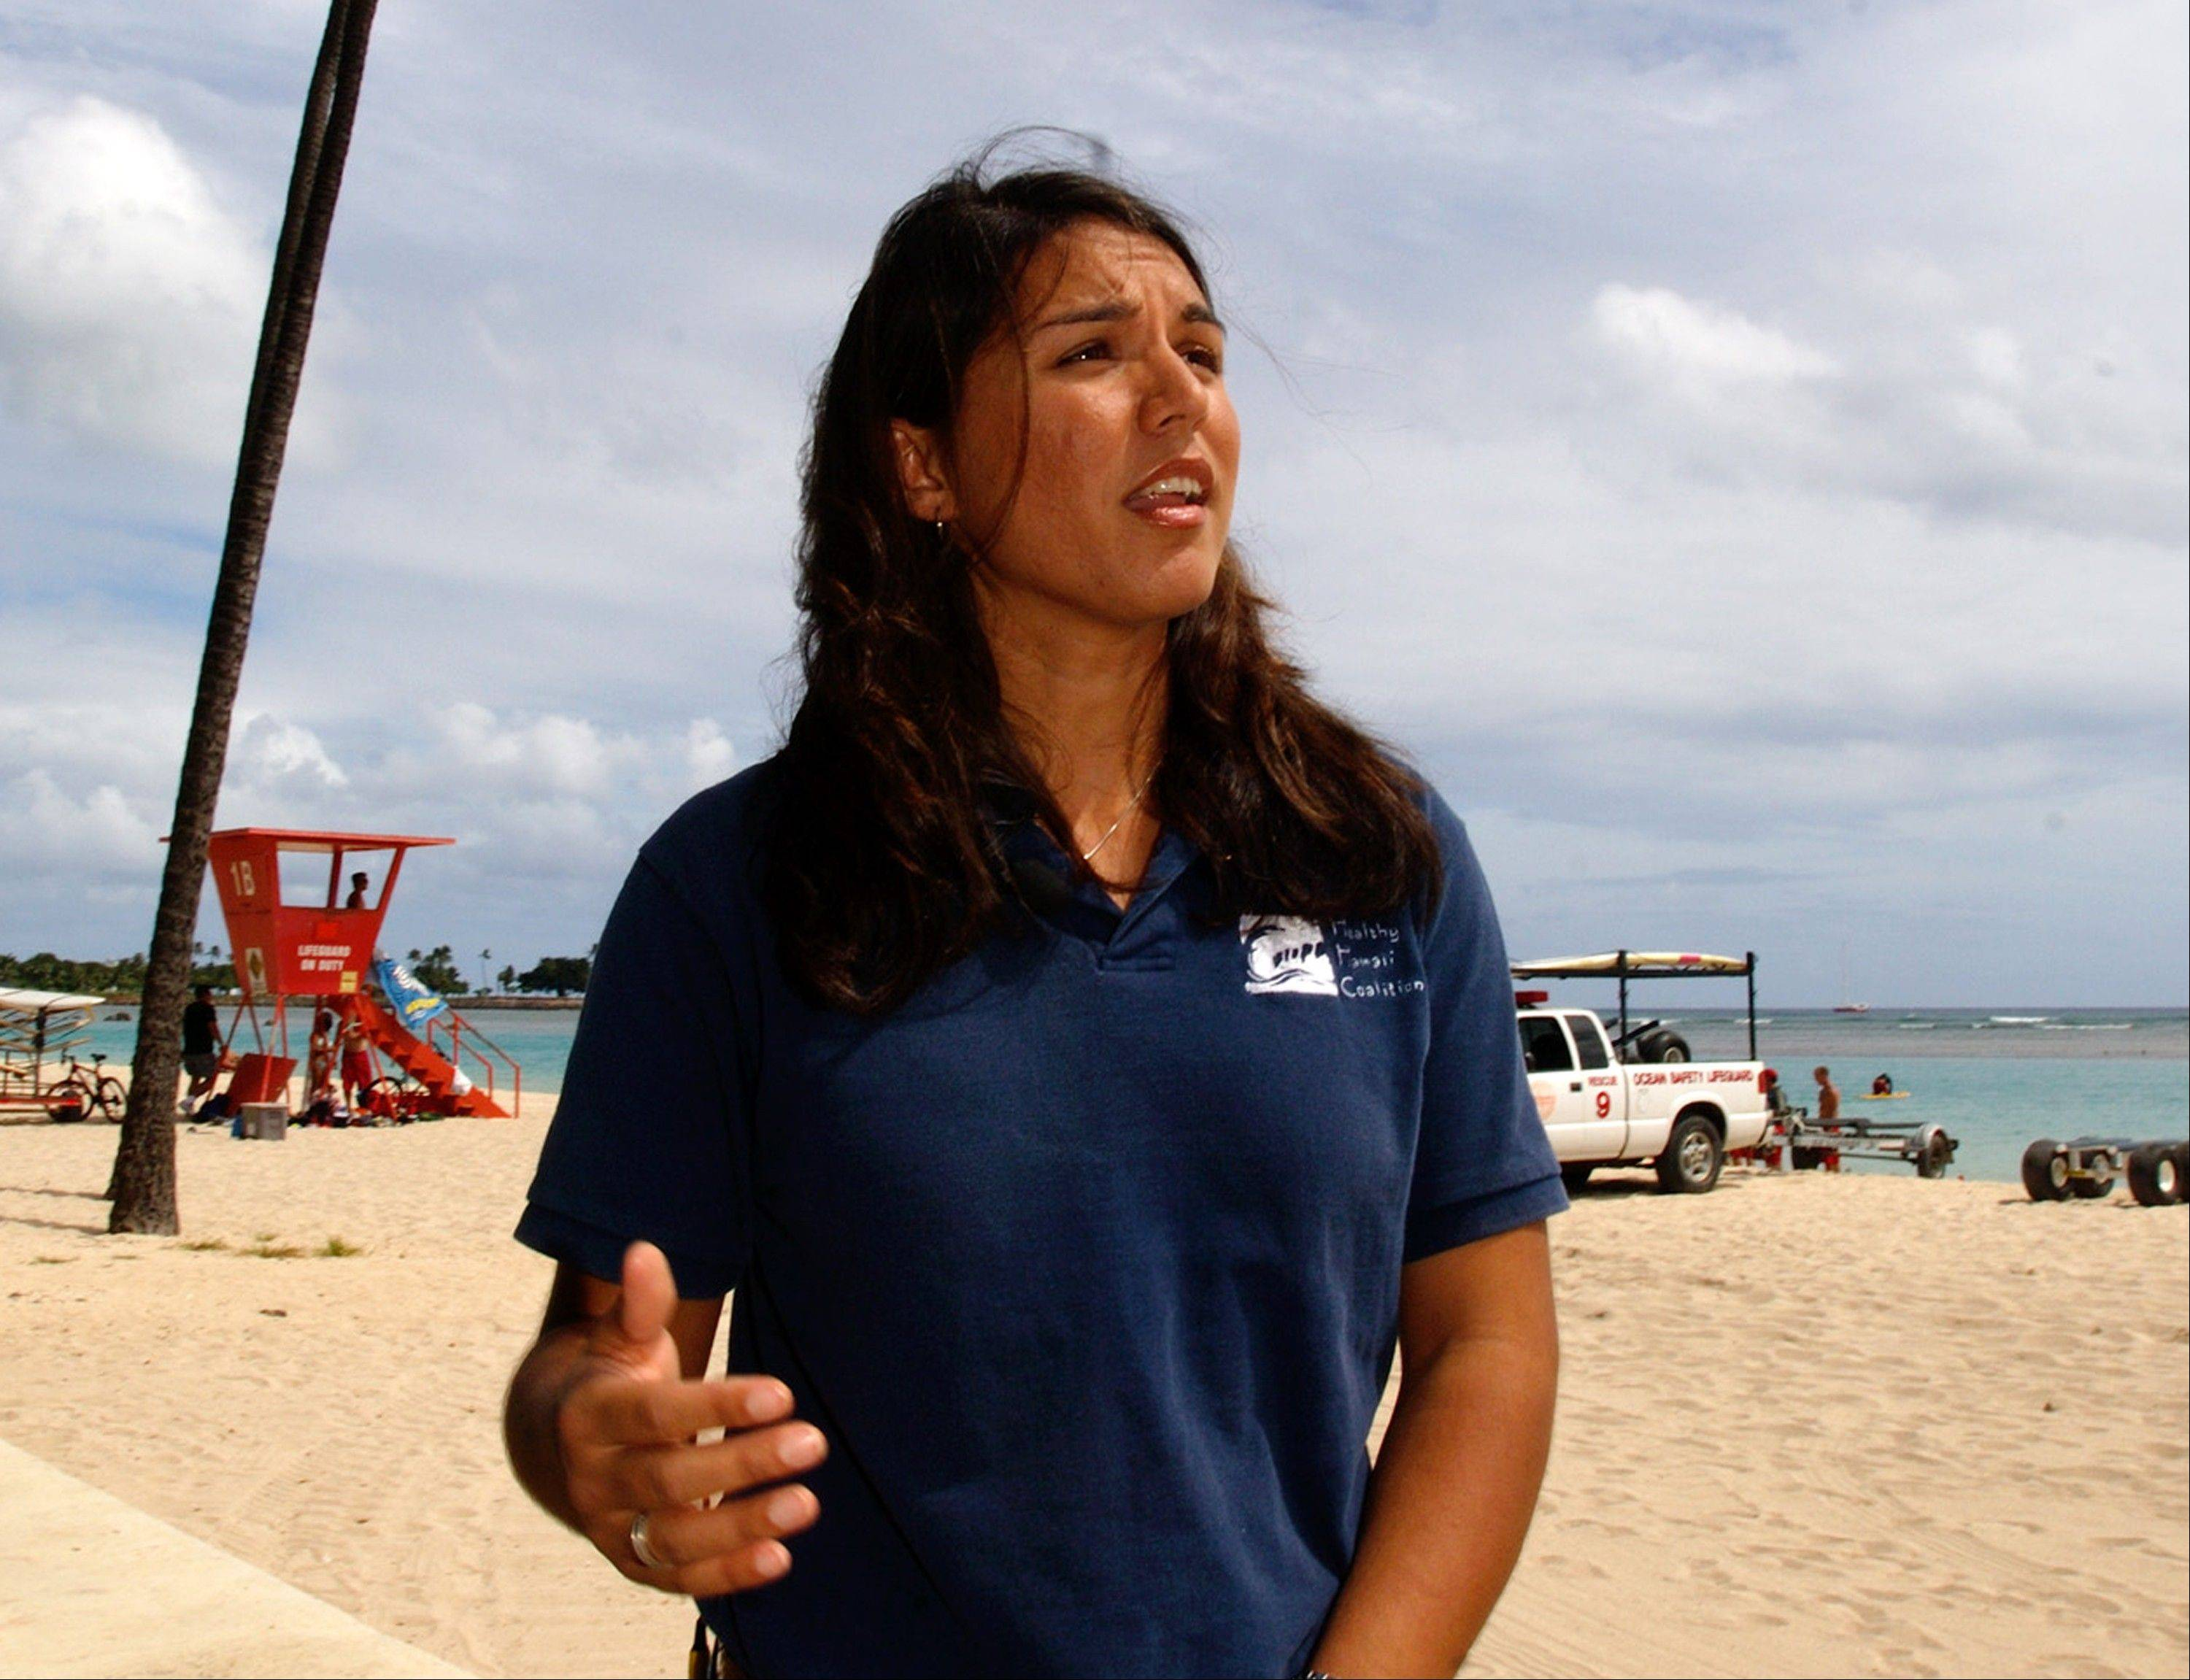 In this April 21, 2006 file photo, Tulsi Gabbard is seen on a beach near Waikiki in Honolulu. After more than a decade of wars in Iraq and Afghanistan, dozens of military veterans -- Republicans and Democrats -- are running for Congress this election year as voters have shown a fresh enthusiasm for candidates with no elected experience. This year, as the military has opened more jobs to women closer to the front lines, several of those veterans are females with battlefield scars and pioneering accomplishments.